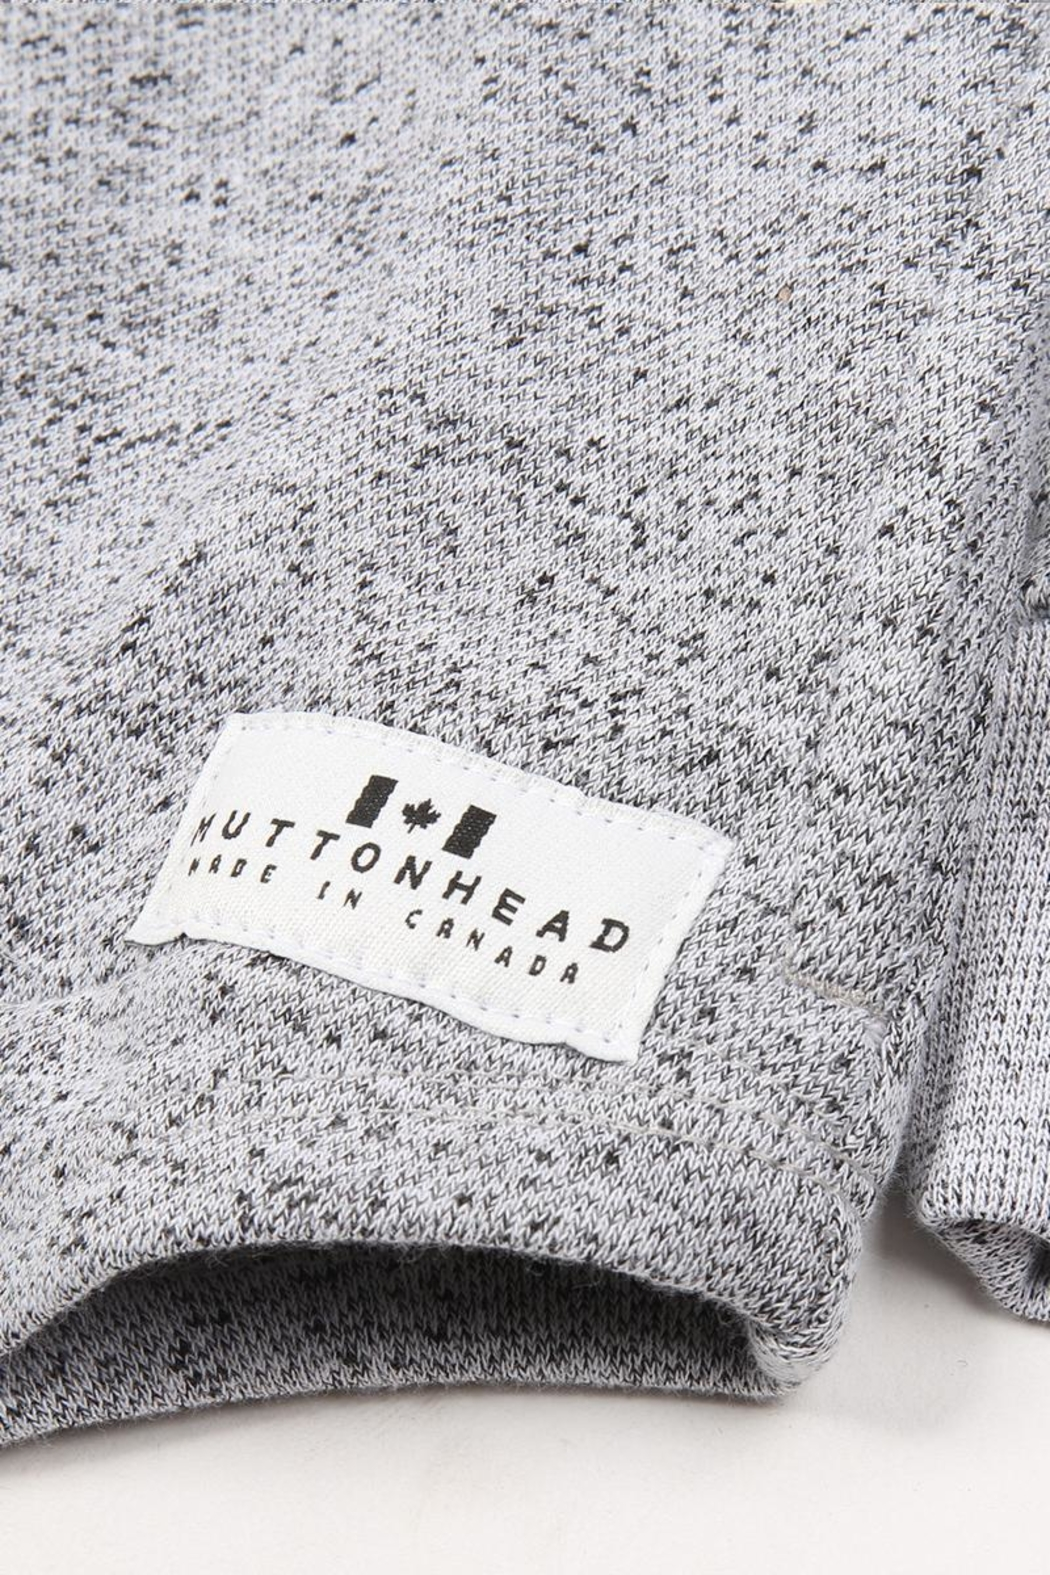 Muttonhead Camping Hoodie - Grey - Side Cropped Image